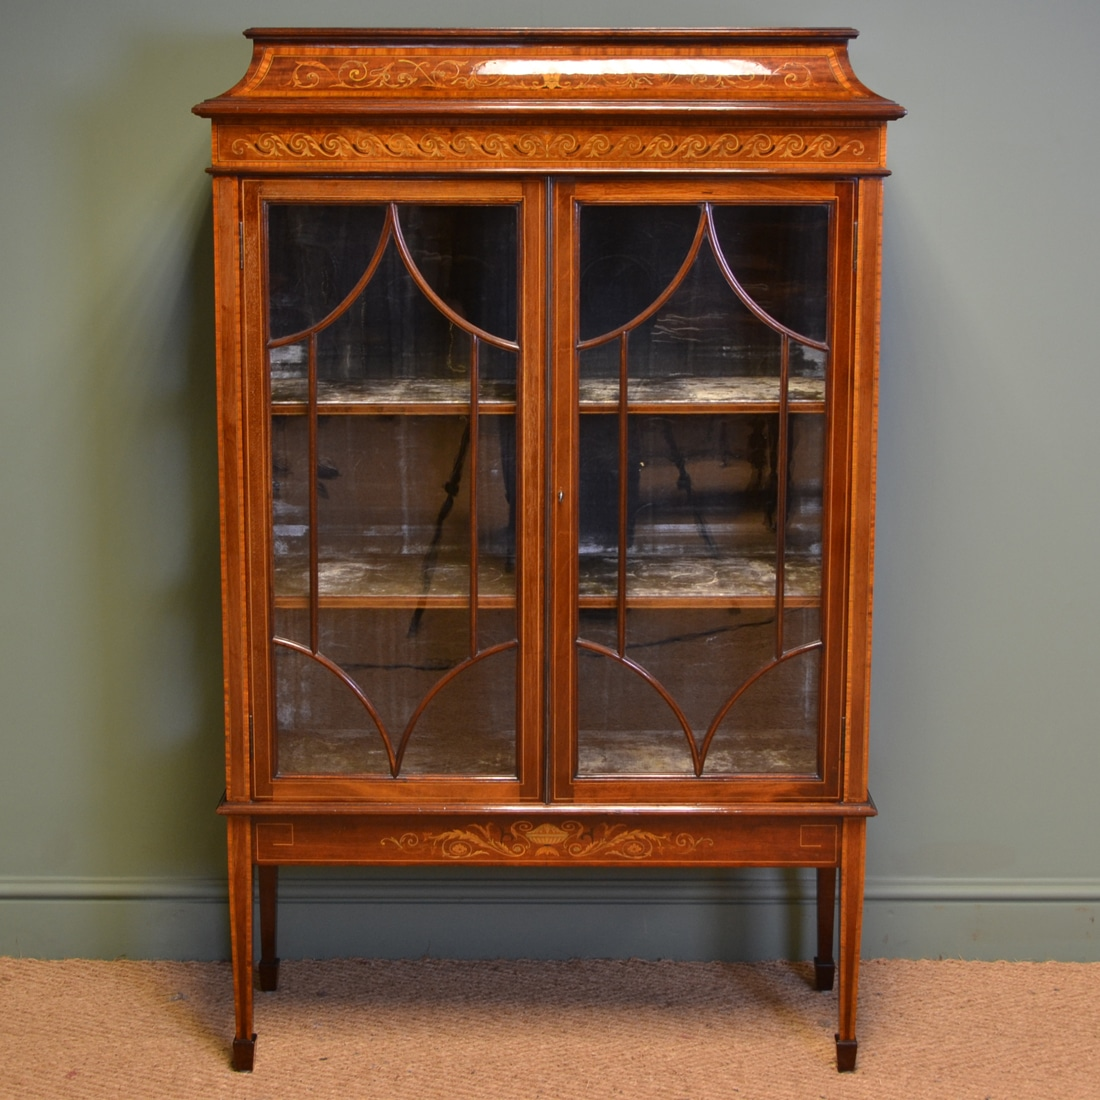 Spectacular Exhibition Quality Maple & Co Inlaid Mahogany Antique Display  Cabinet - Antique Display Cabinets - Antiques World